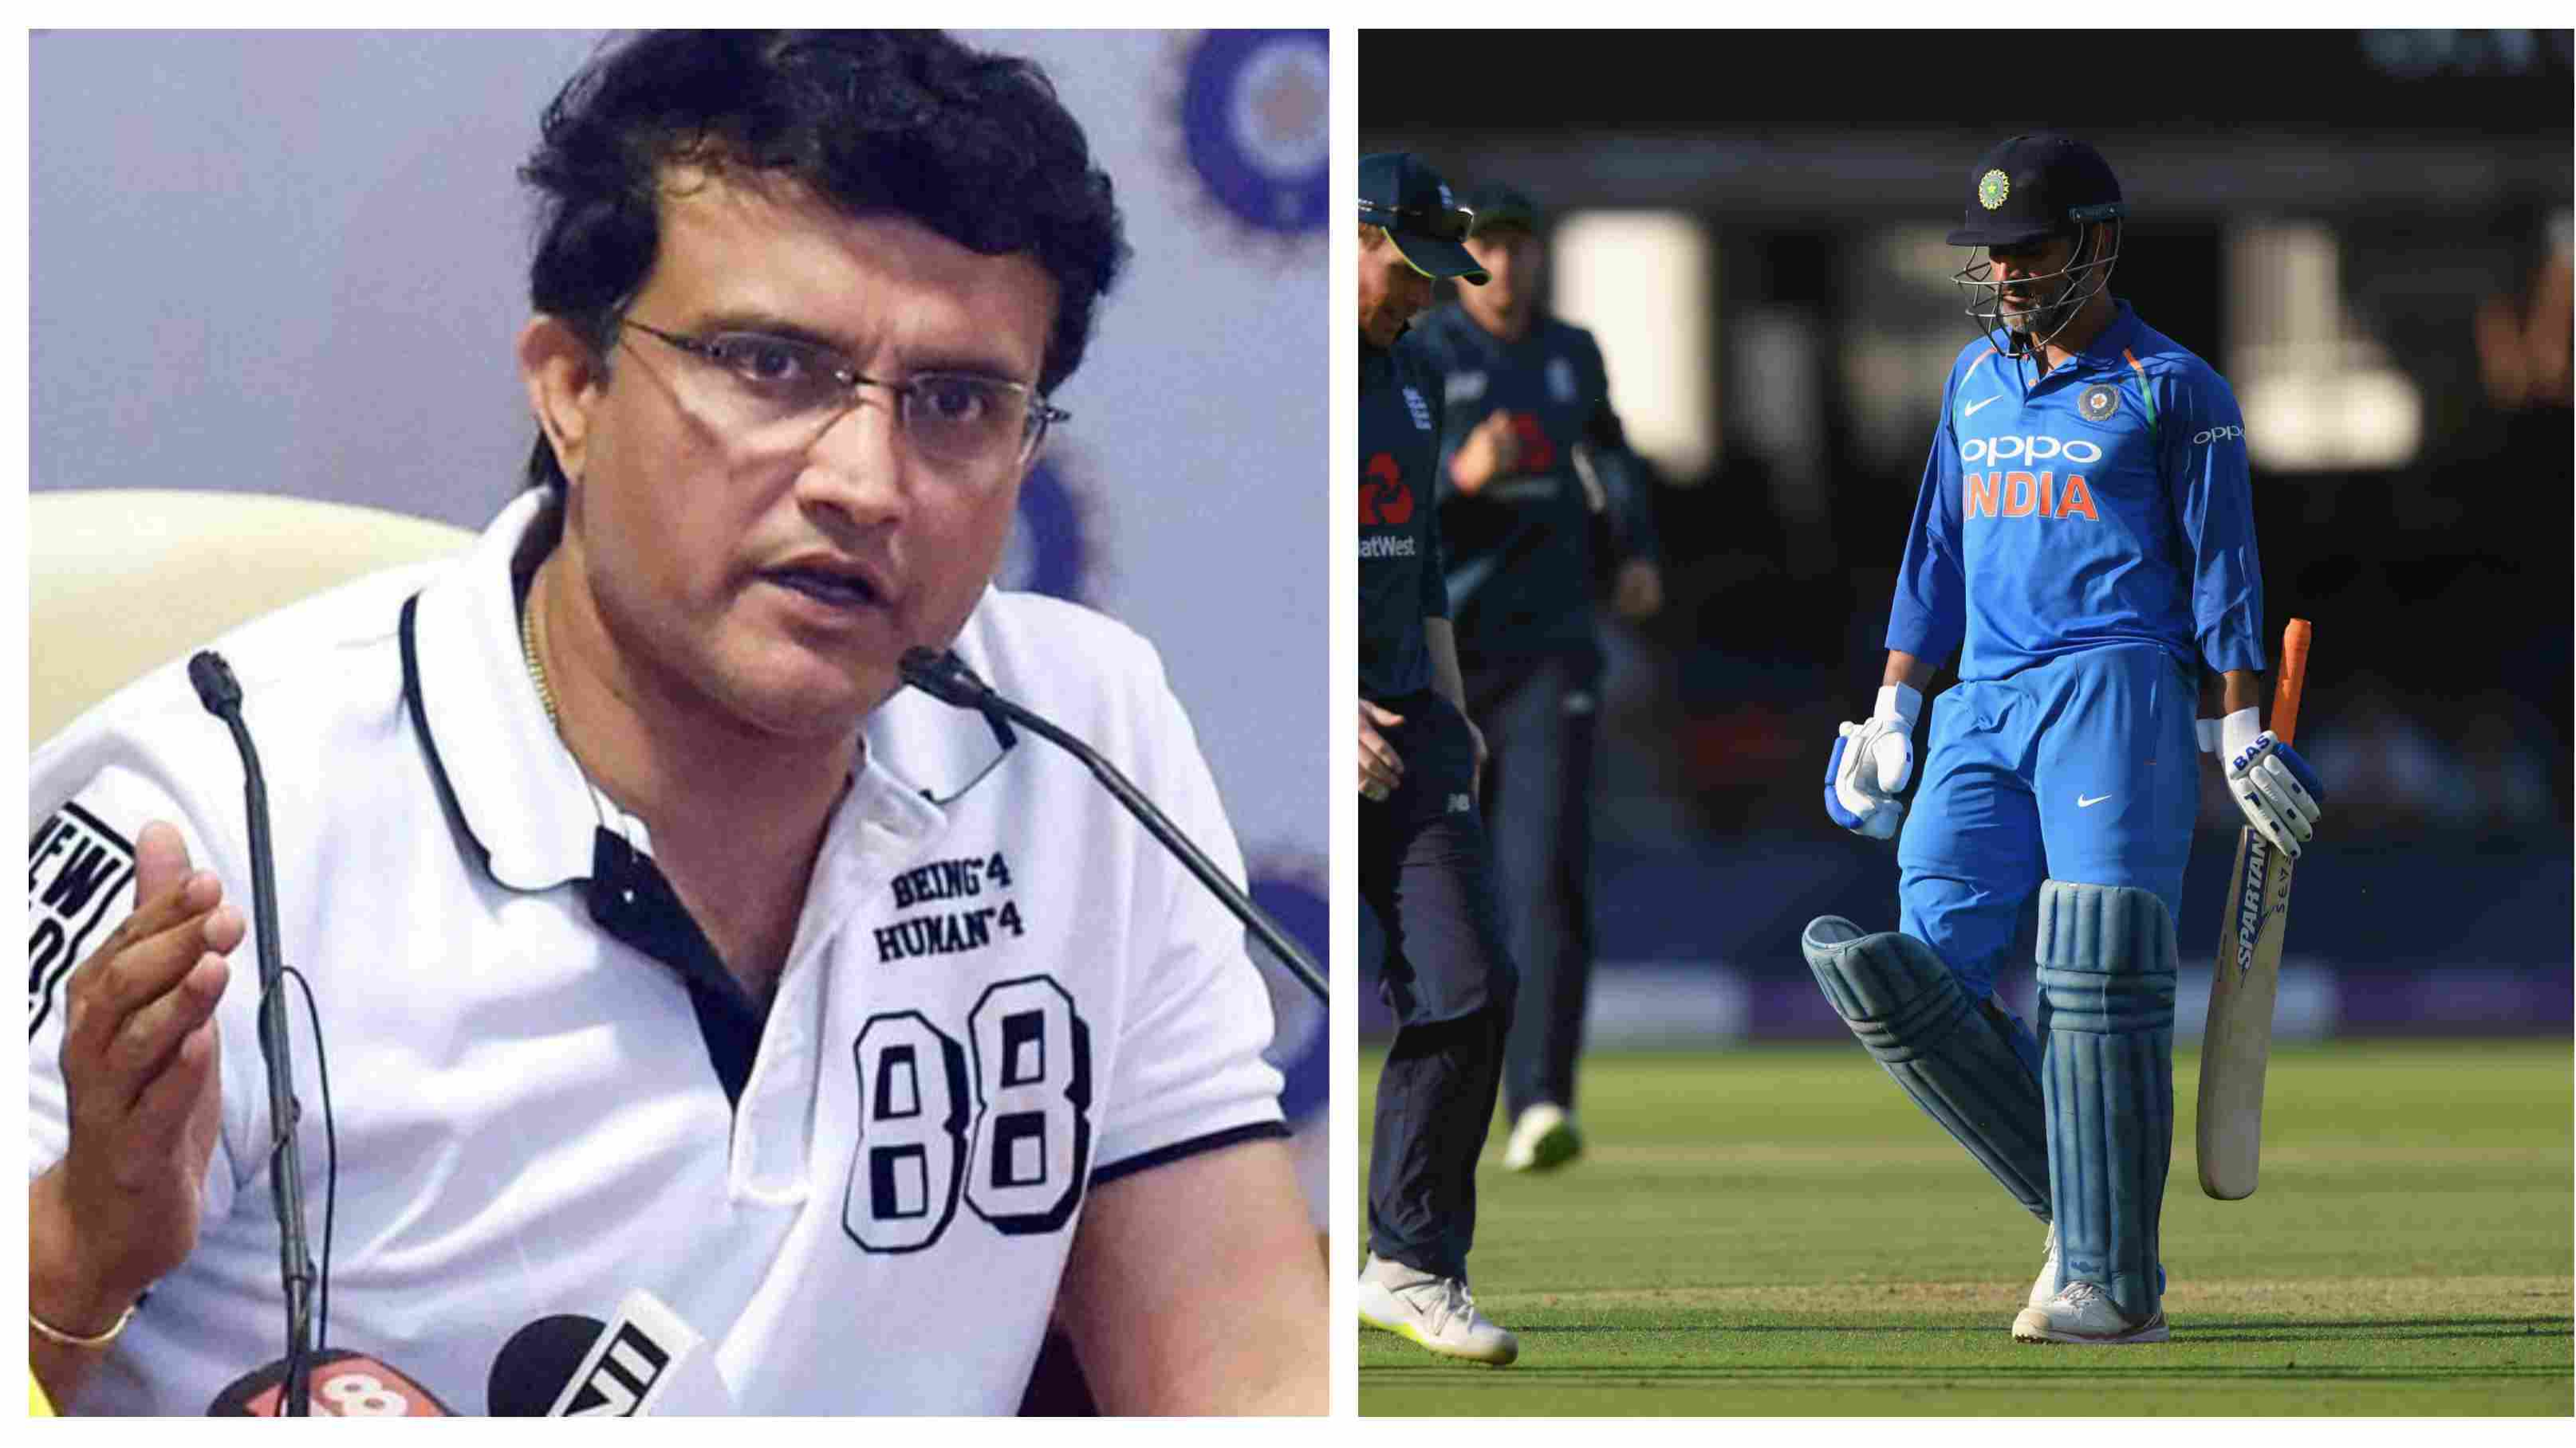 ENG v IND 2018: Sourav Ganguly urges fans to not boo MS Dhoni